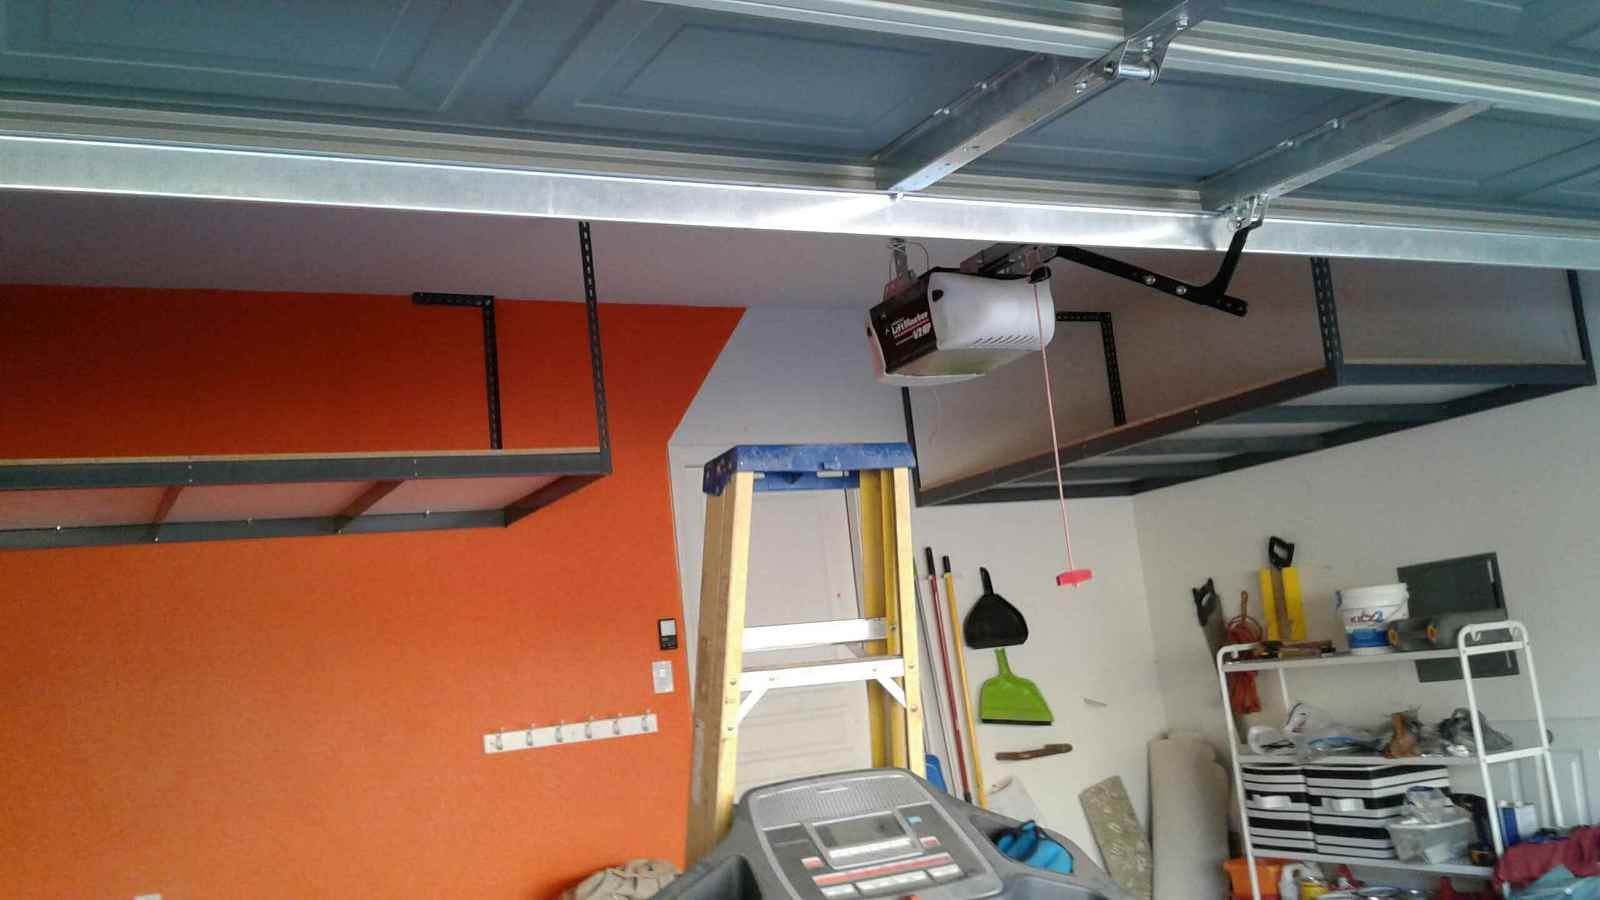 Charming Our Team Of Professionals Will Manufacture Your Garage Storage Systems In A  Timely Manner. Our Overhead Storage Systems Are Done Promptly And At An ...